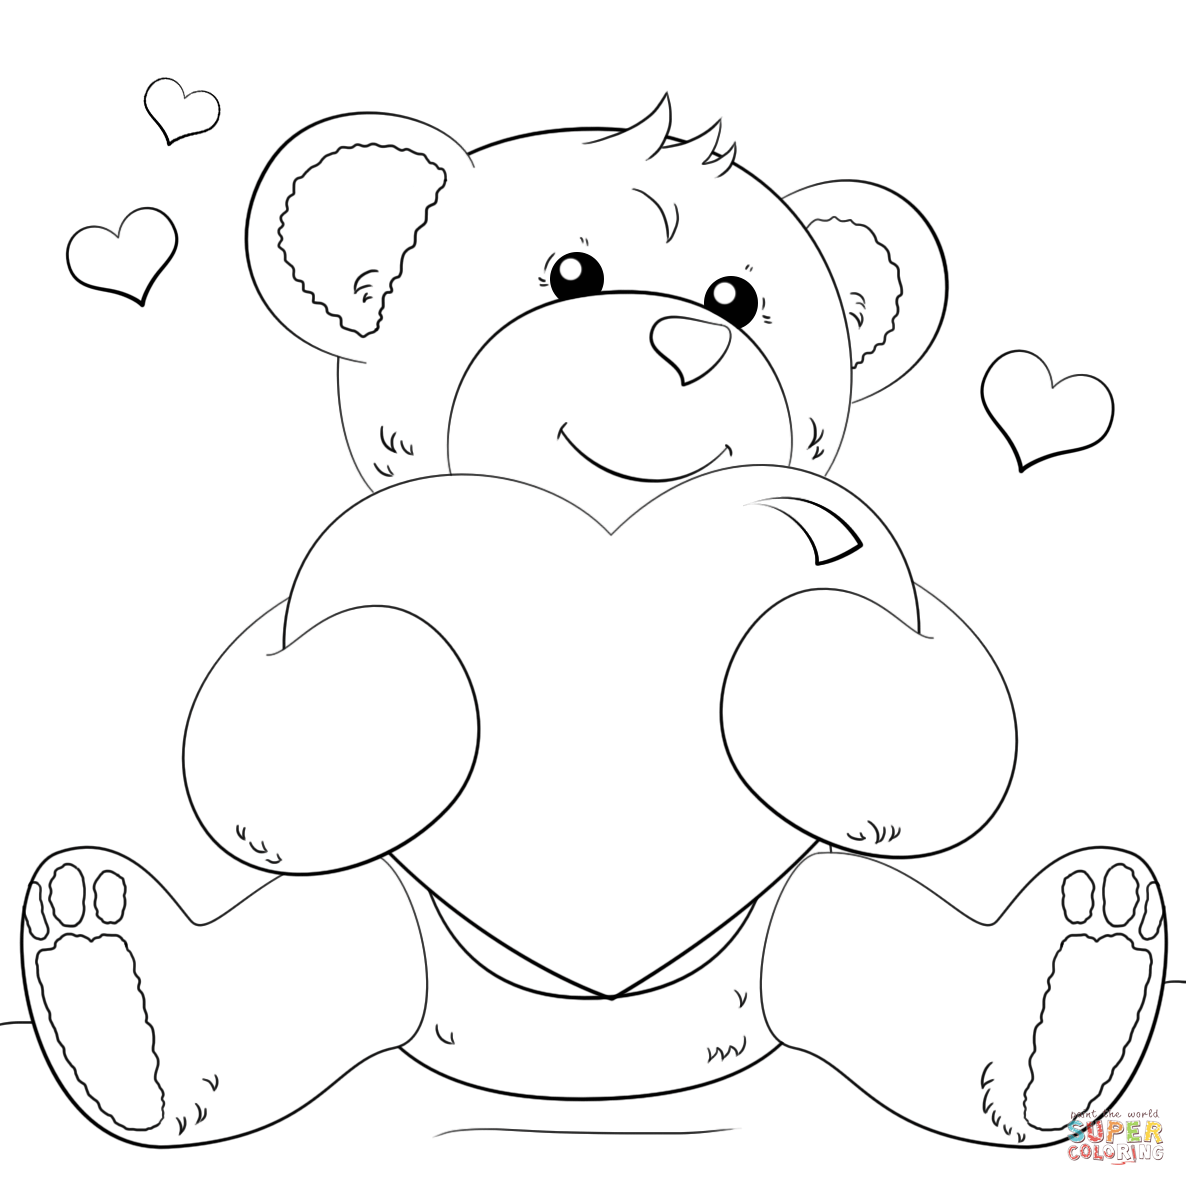 Hearts coloring pages | Free Coloring Pages